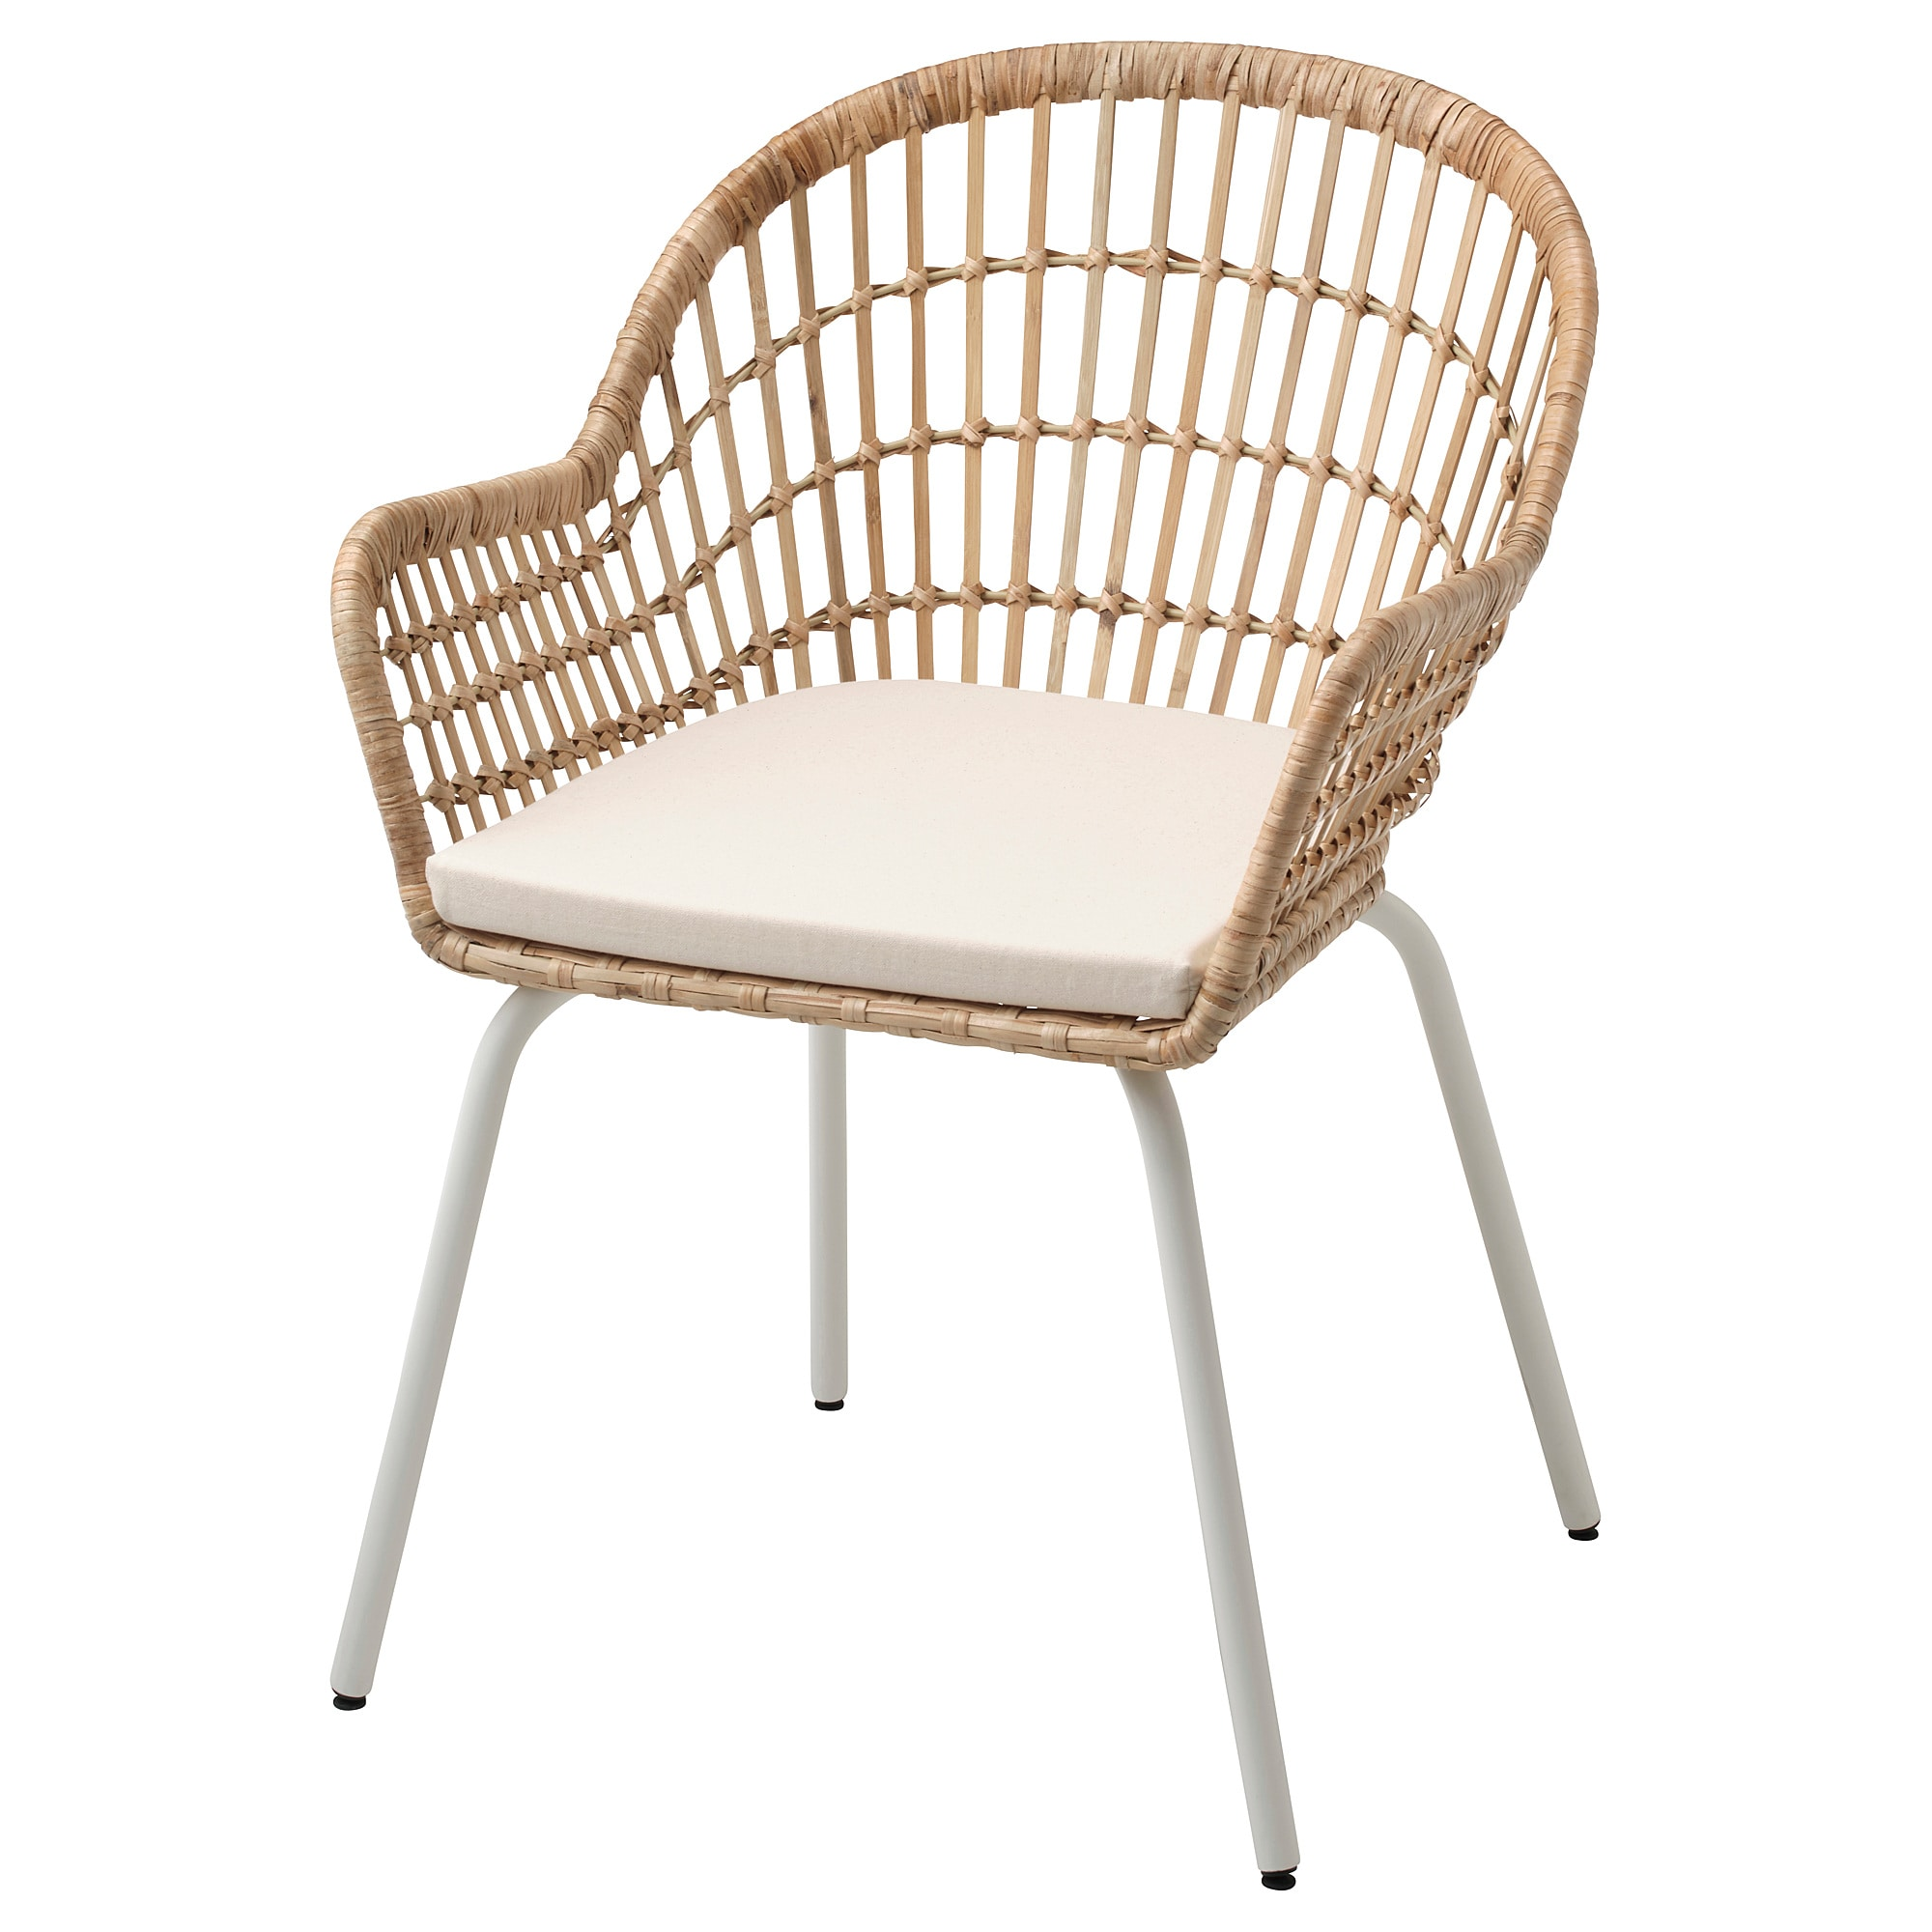 NILSOVE / NORNA Chair with chair pad rattan white, Laila